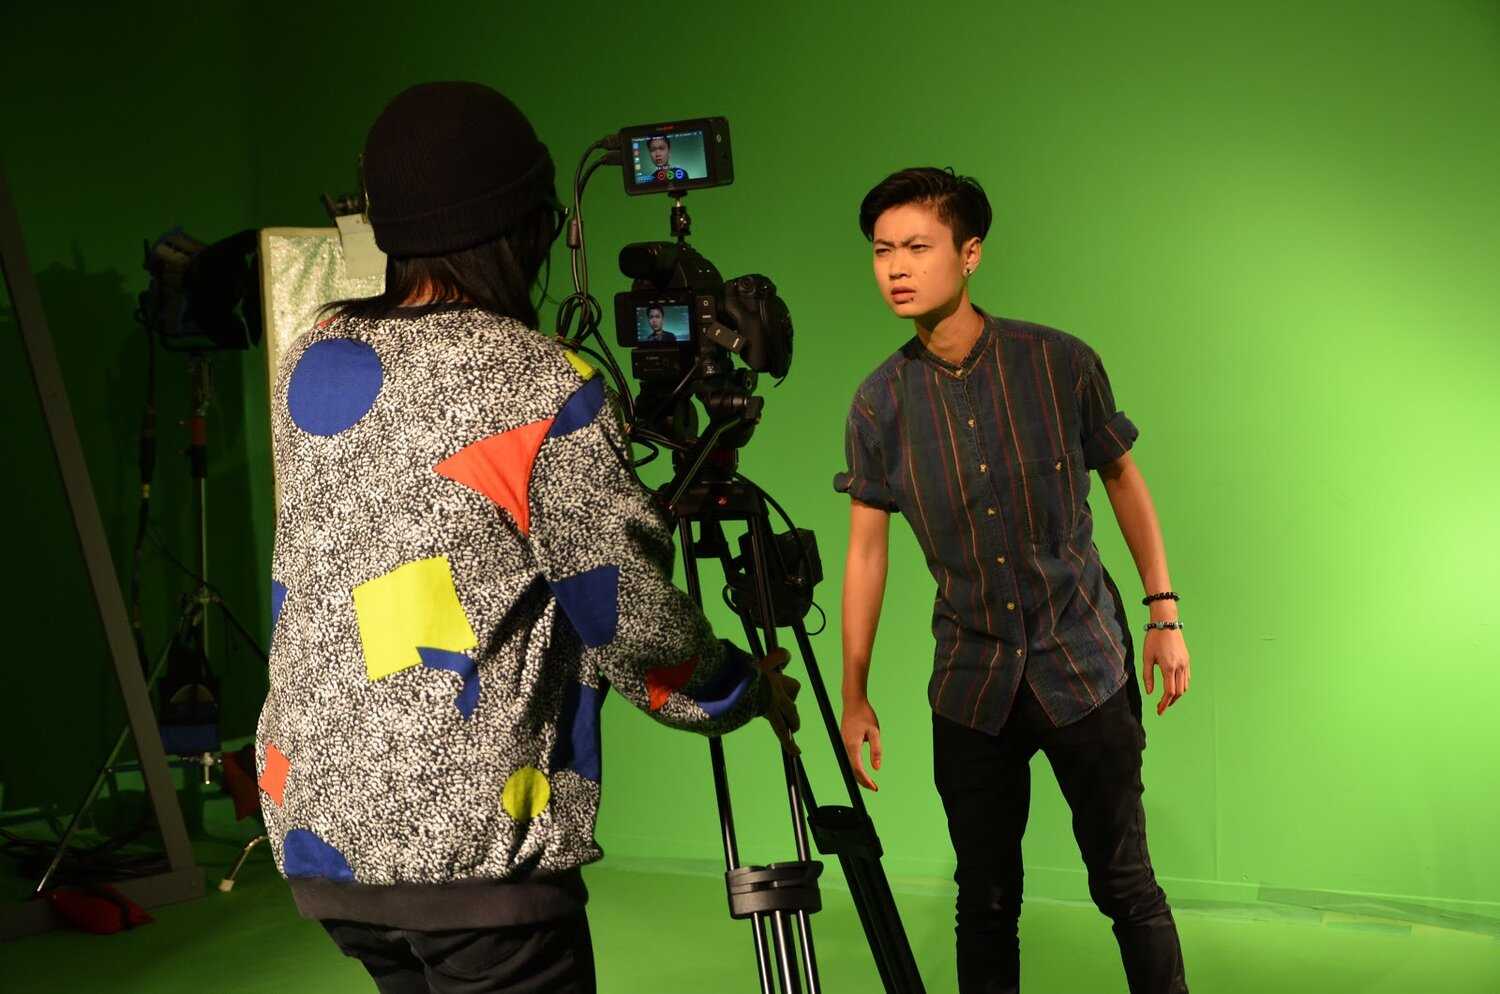 Actor Ck is standing in front of a green screen, looking into a camera, which is operated by Melinda James.